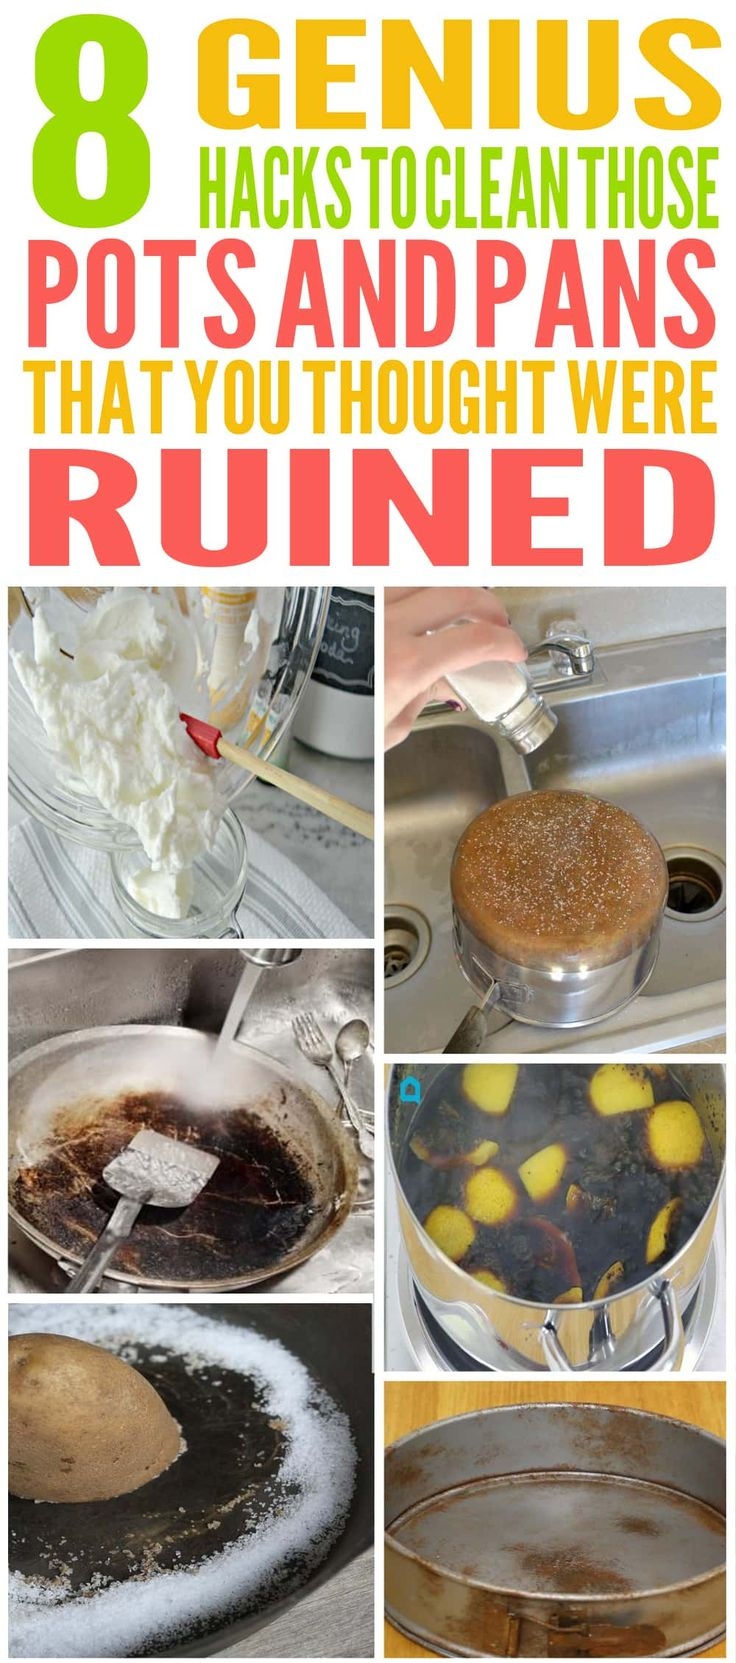 These are the BEST pots and pans cleaning hacks! Glad to have found these cleaning hacks. They'll already made my life a lot easier. Pinning for sure.